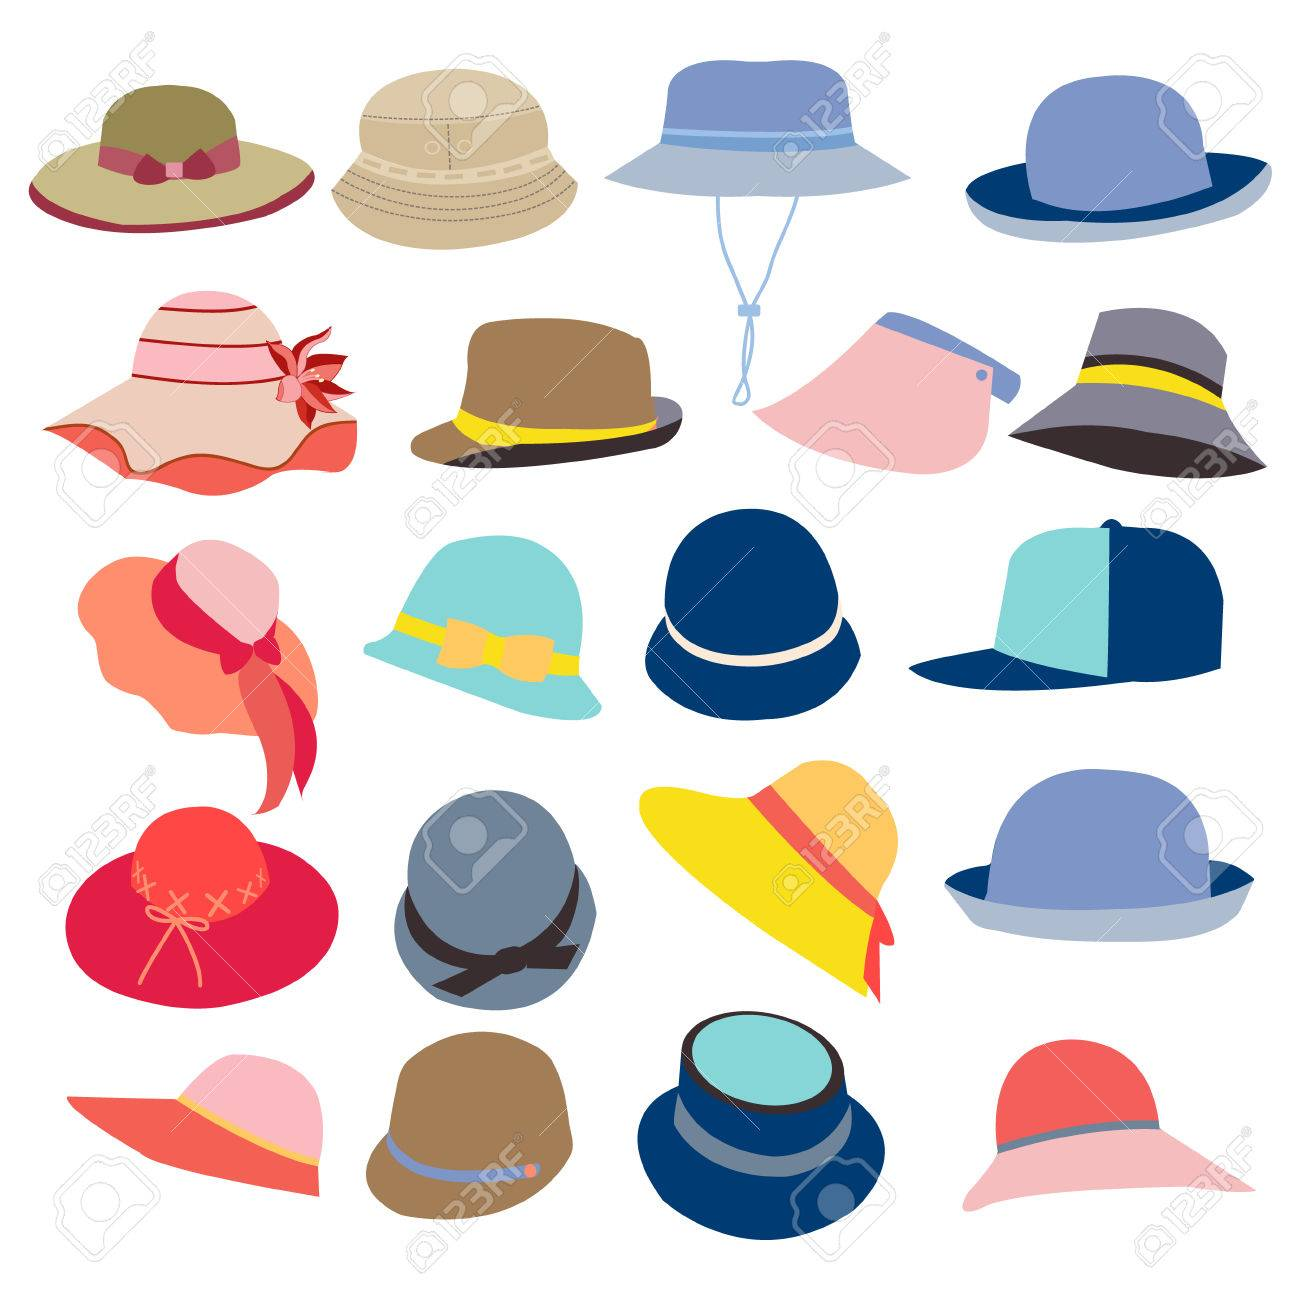 17cf5910bce95 collection of hats for men and women icons set, different types of hats  Stock Vector